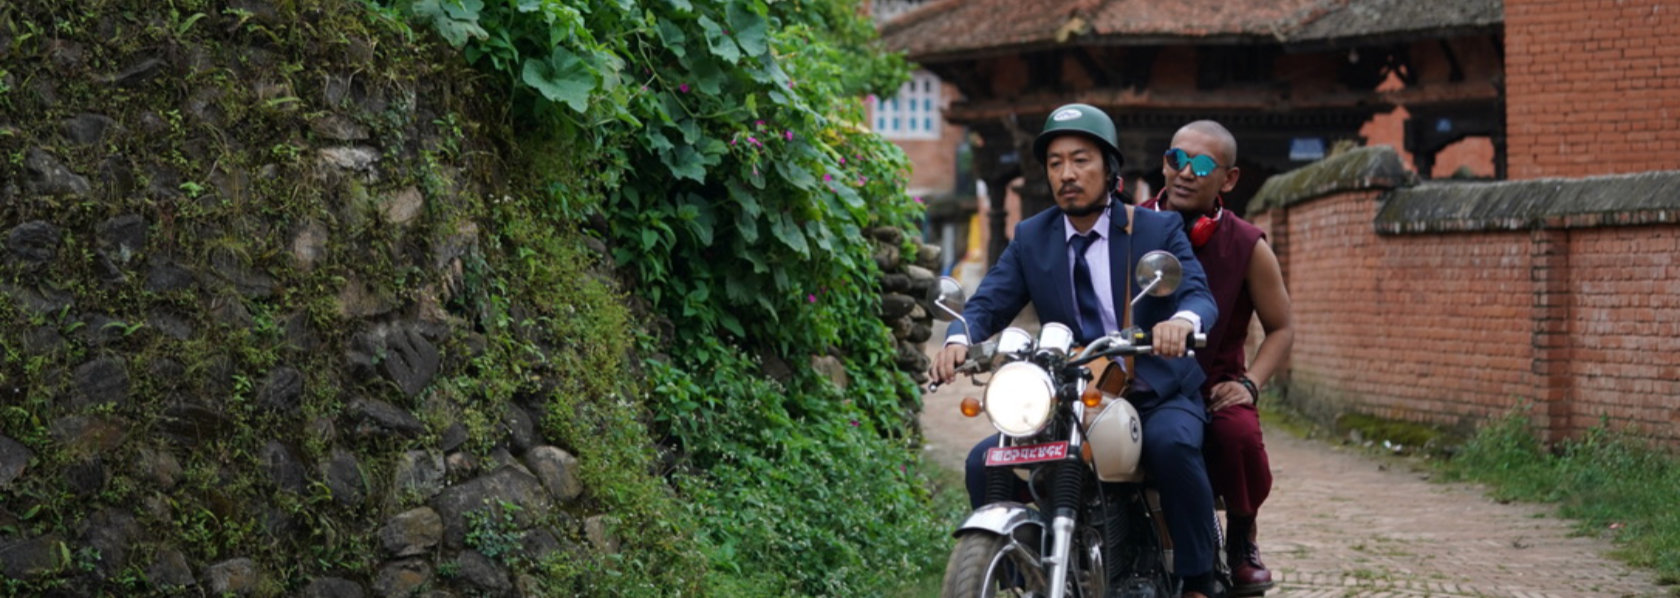 Man in suit and monk wearing sunglasses ride a motorcycle - Looking for a Lady With Fangs and a Moustache - THIS Buddhist Film Festival